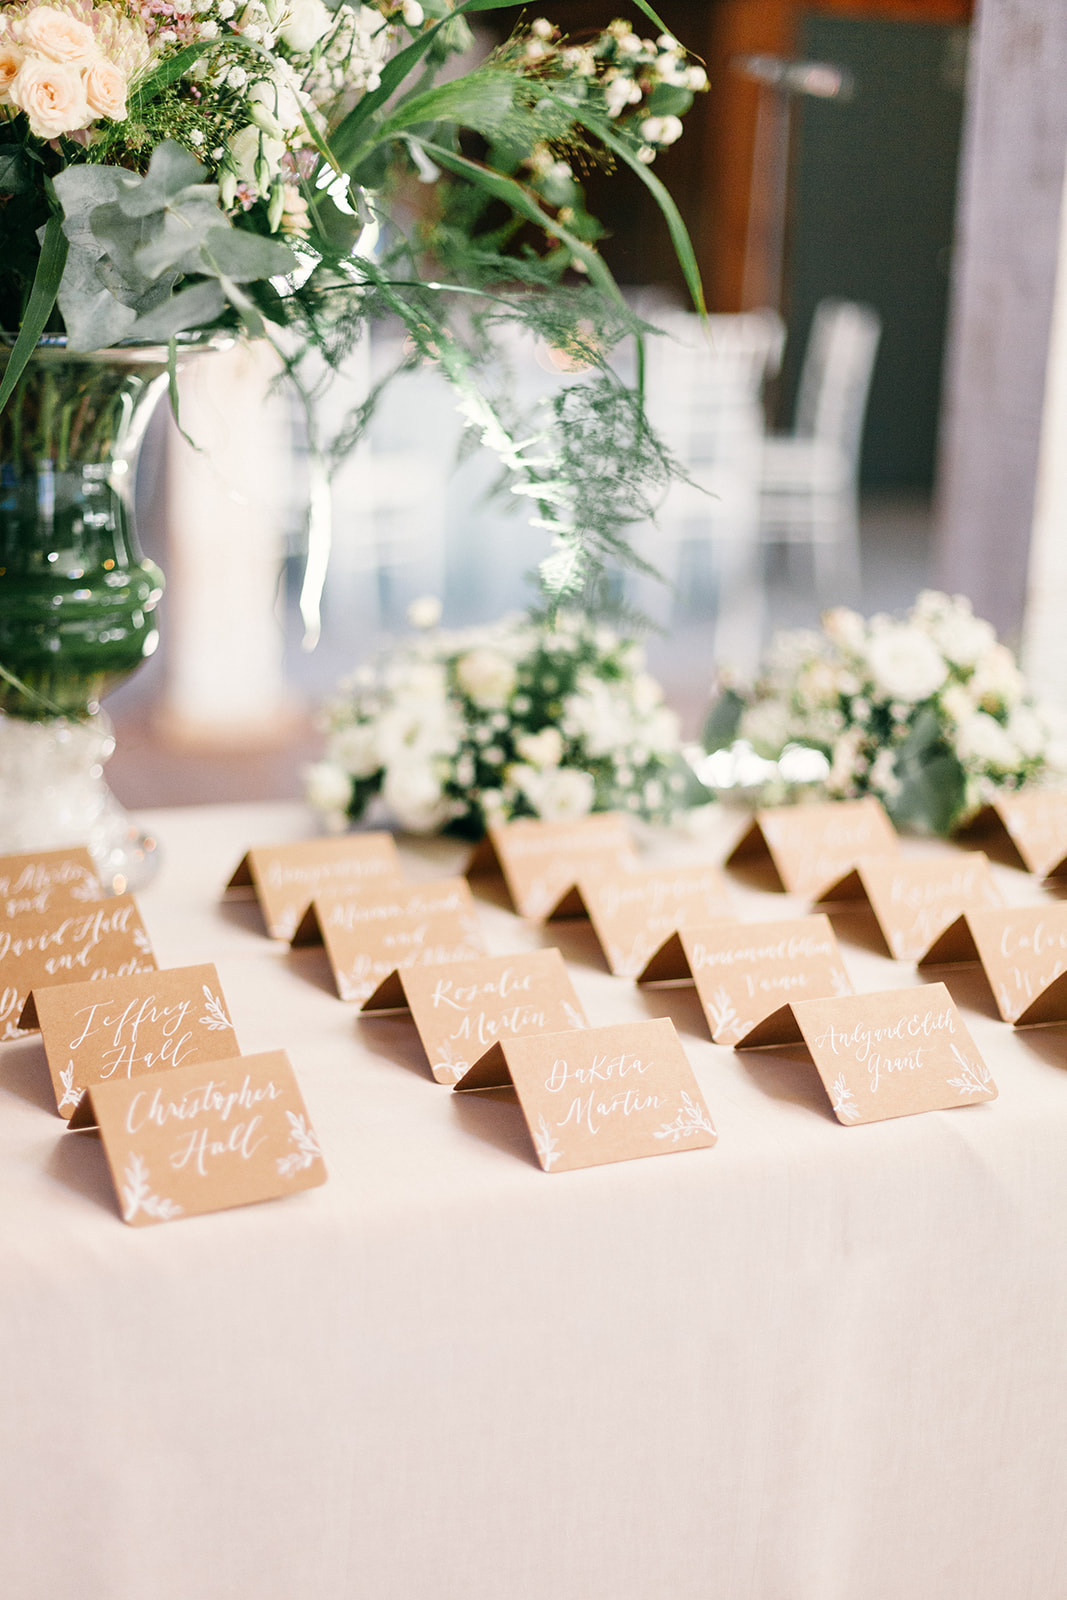 French Chateau Wedding, Events by Reagan, France Wedding, Destination Wedding Planner, Place cards